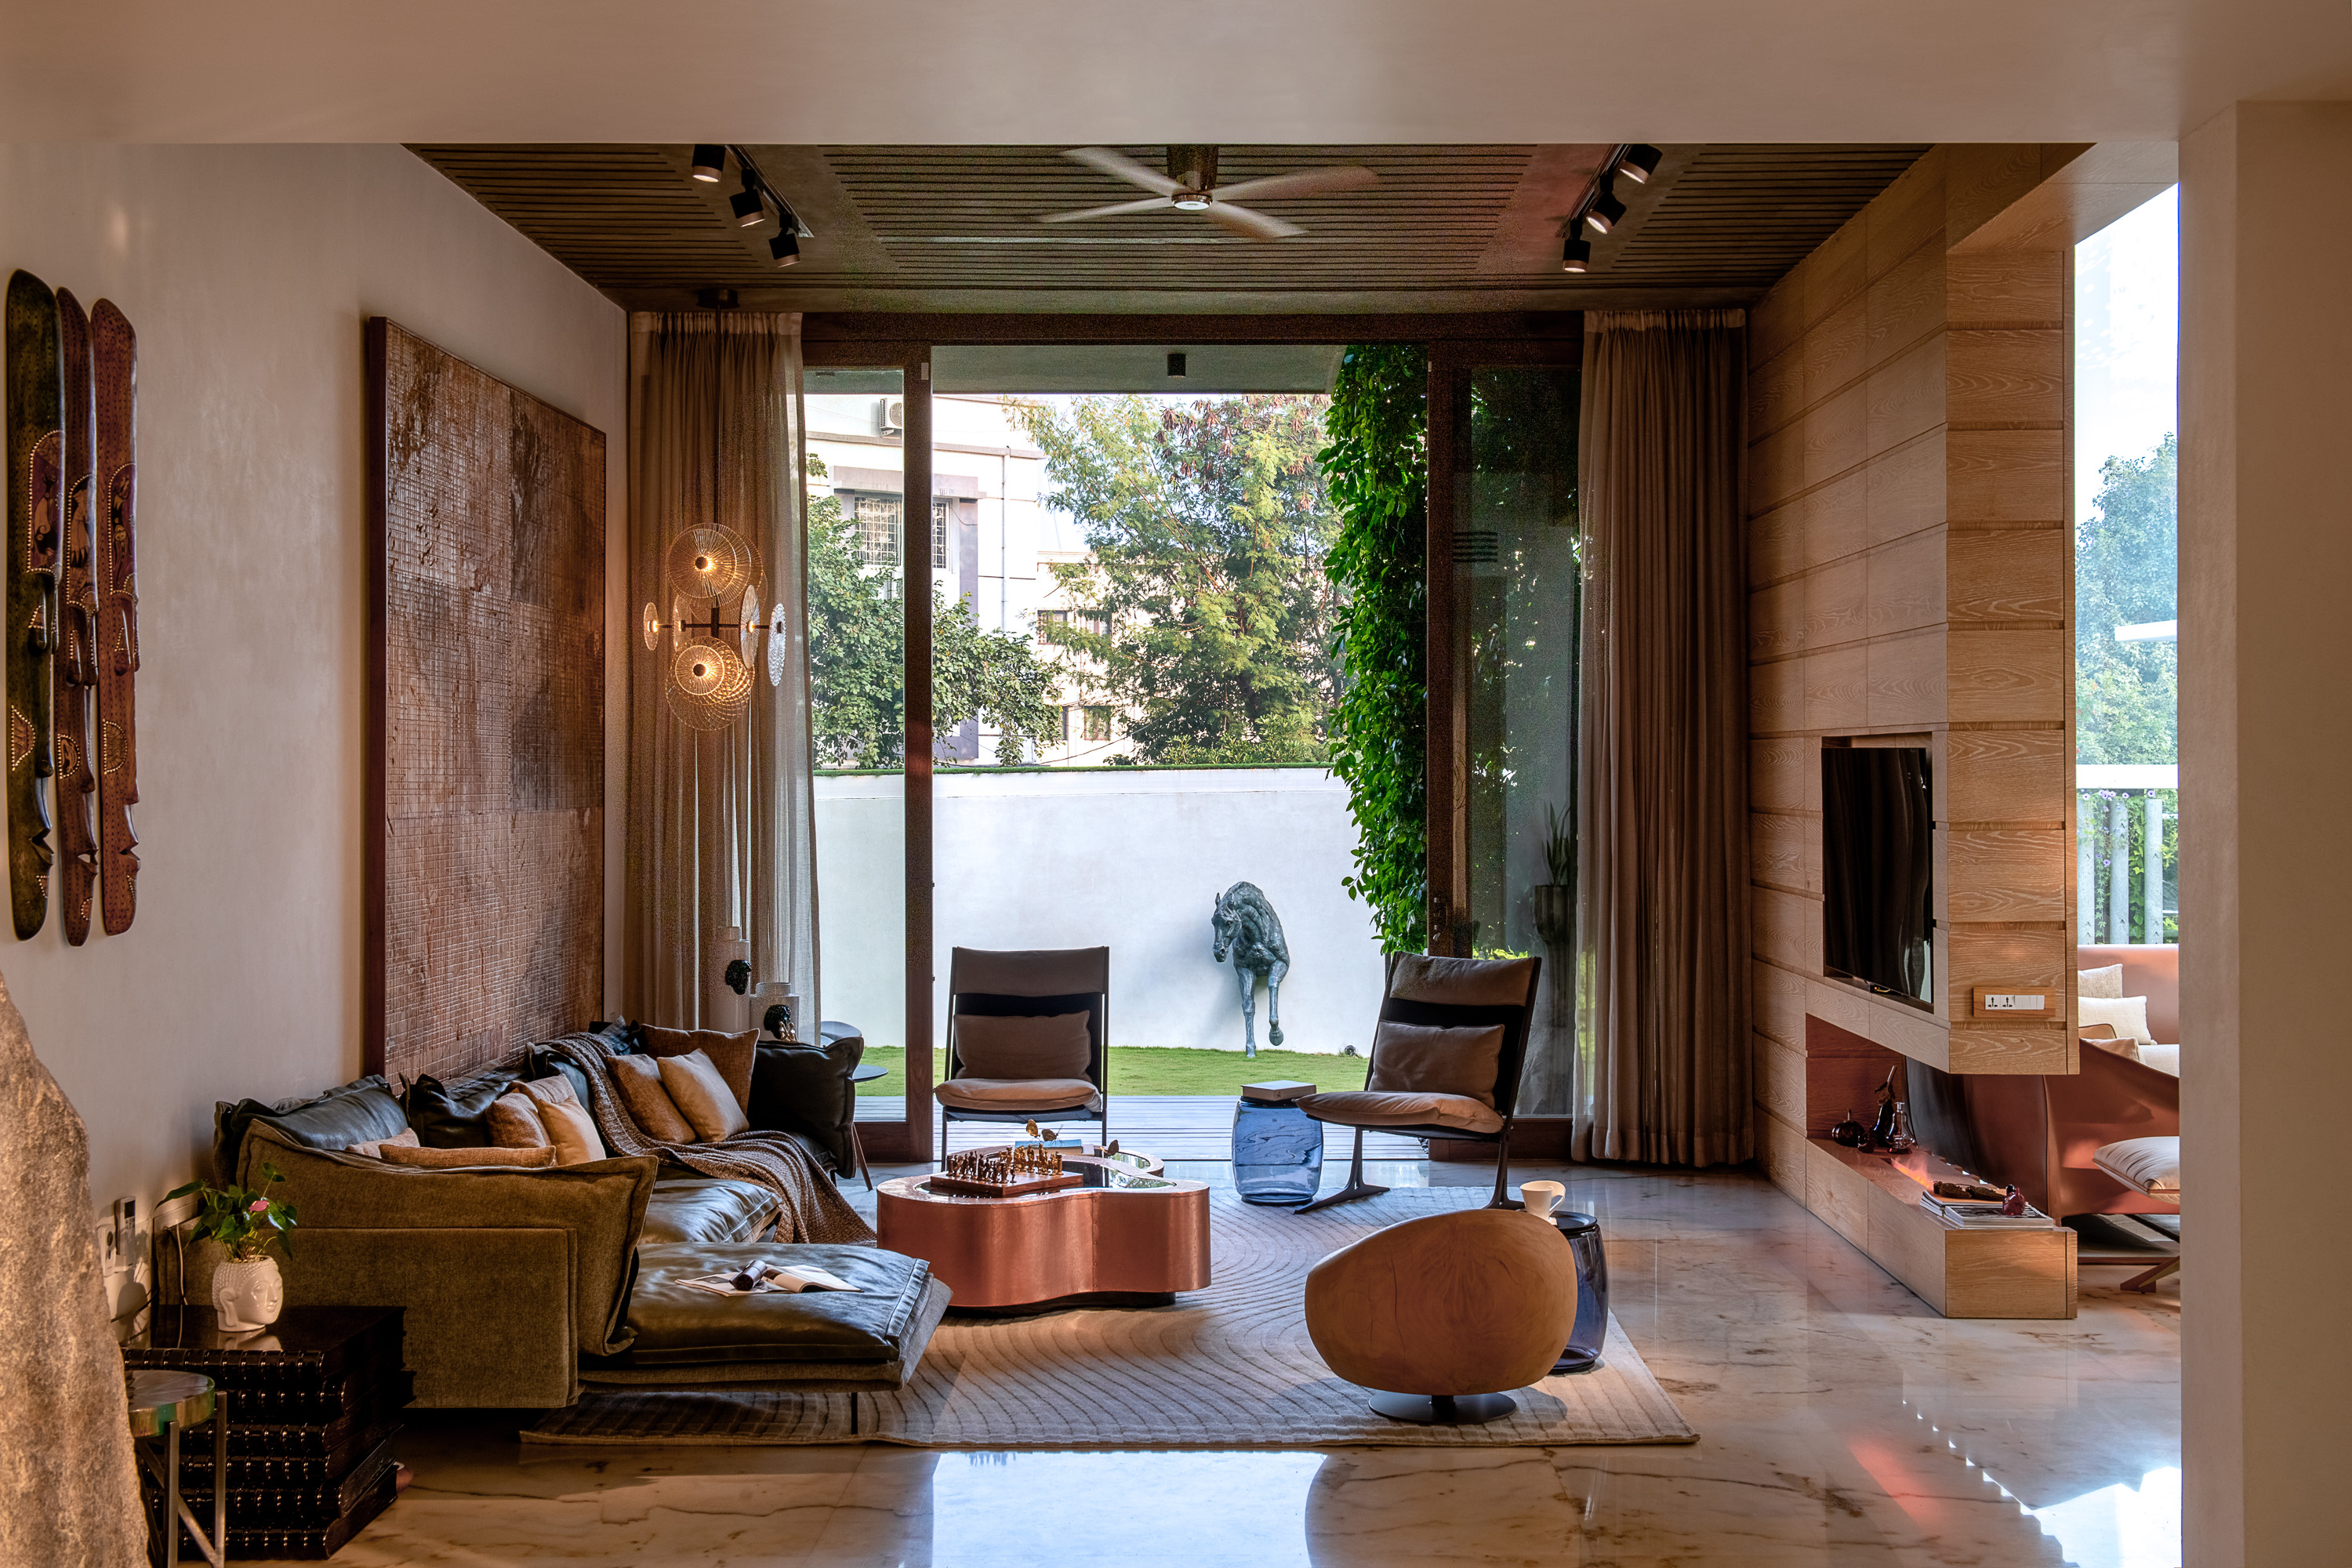 Sustainability Meets Luxury In This Private Residence by NA Architects (4)